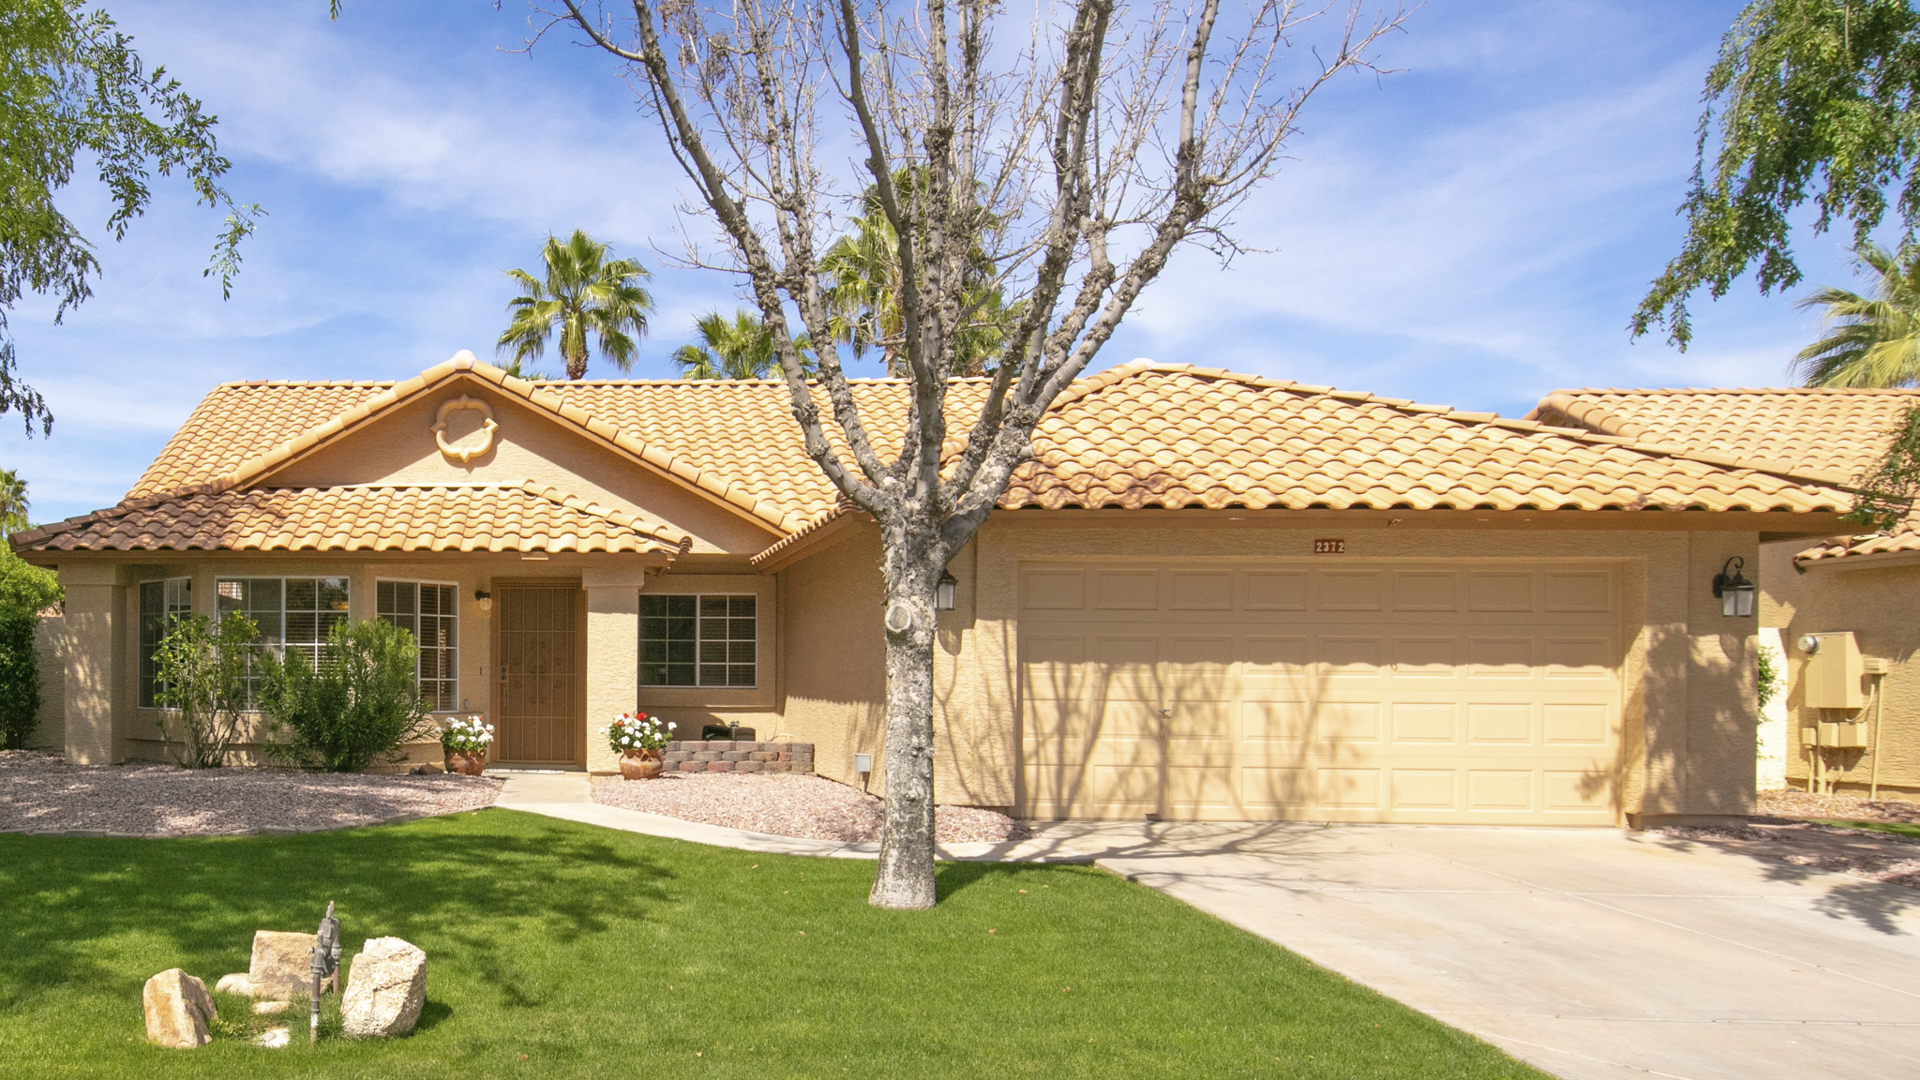 New Listing! 2372 W Redwood Dr. Chandler, AZ 85248 - Waters Edge at Ocotillo | Amy Jones Group